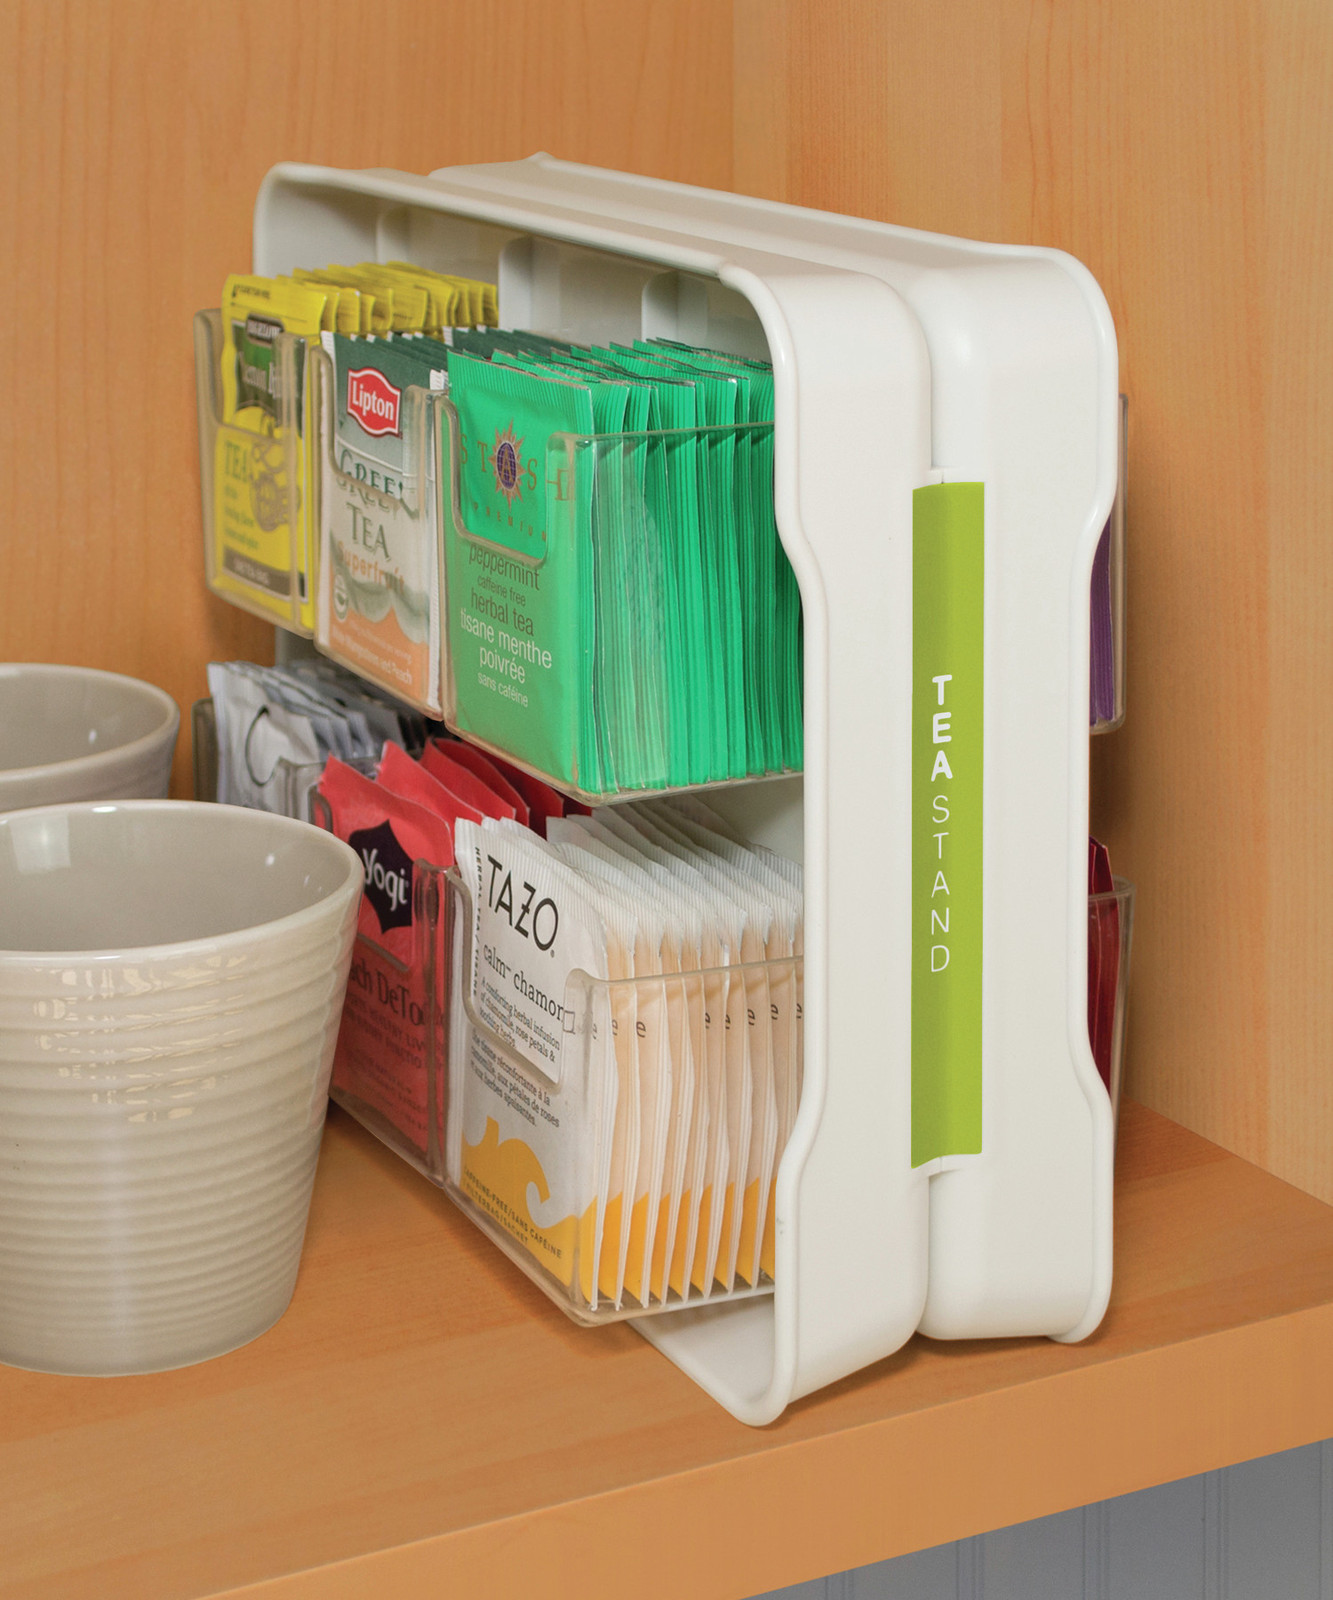 Tea_bag_holder_storage